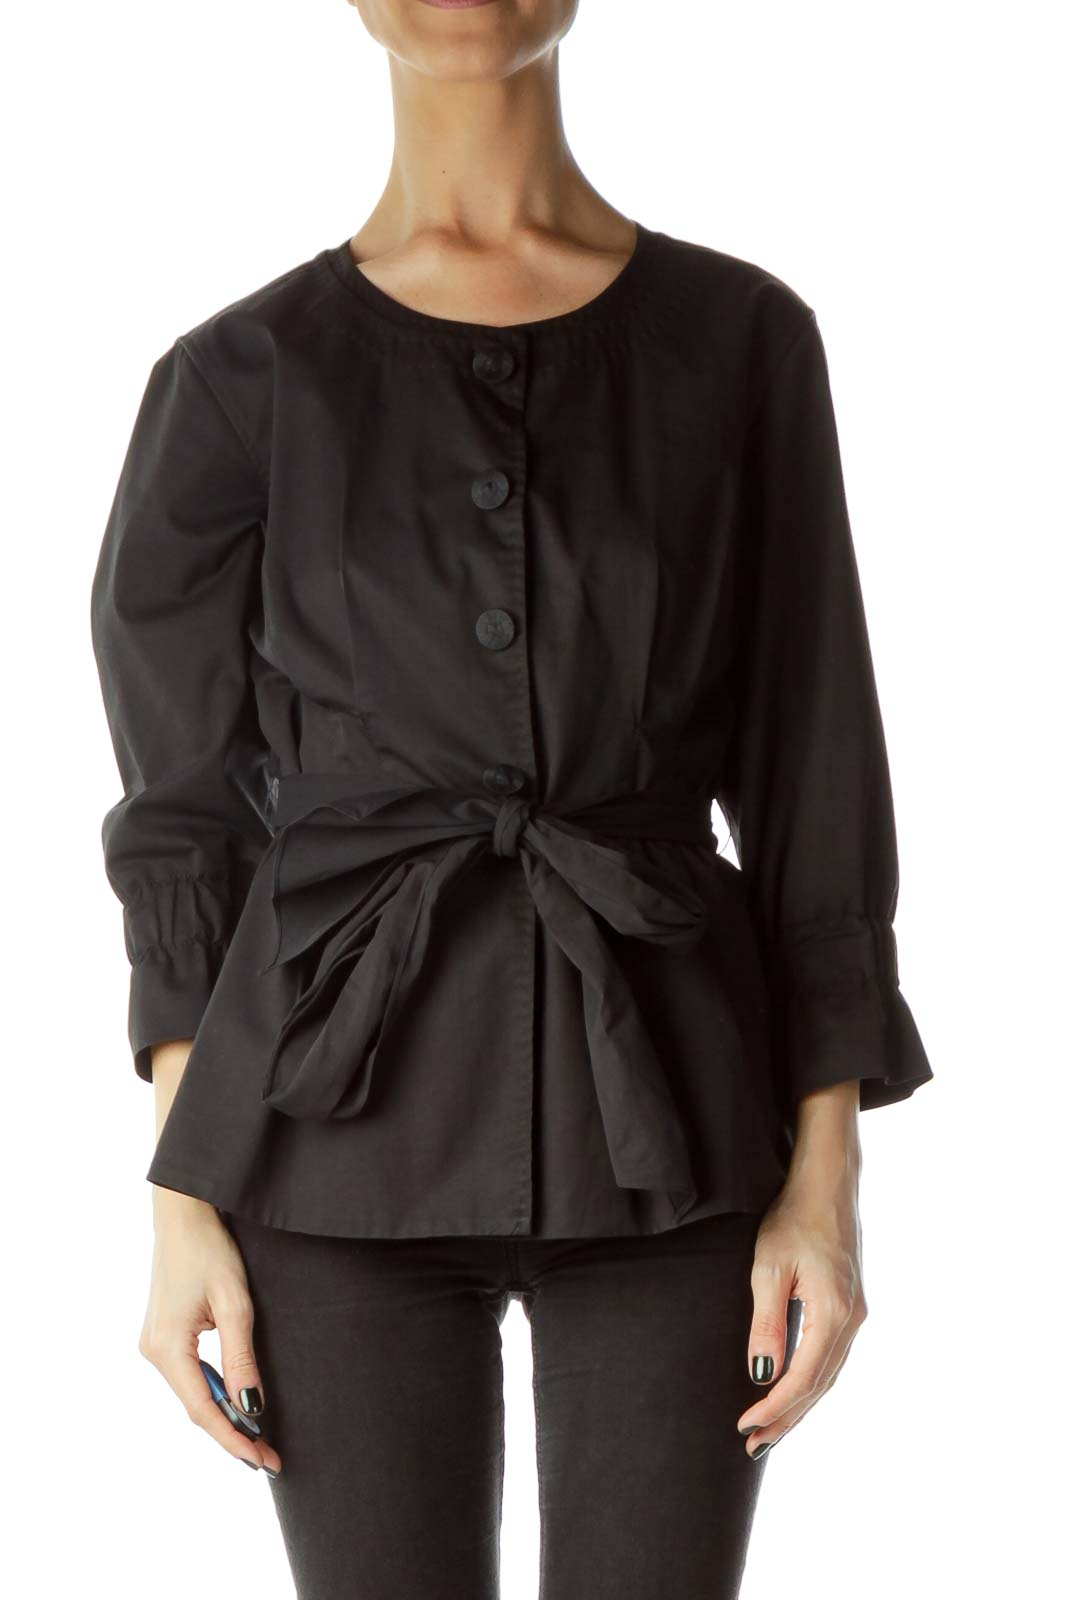 Black 3/4 Sleeve Fitted Jacket